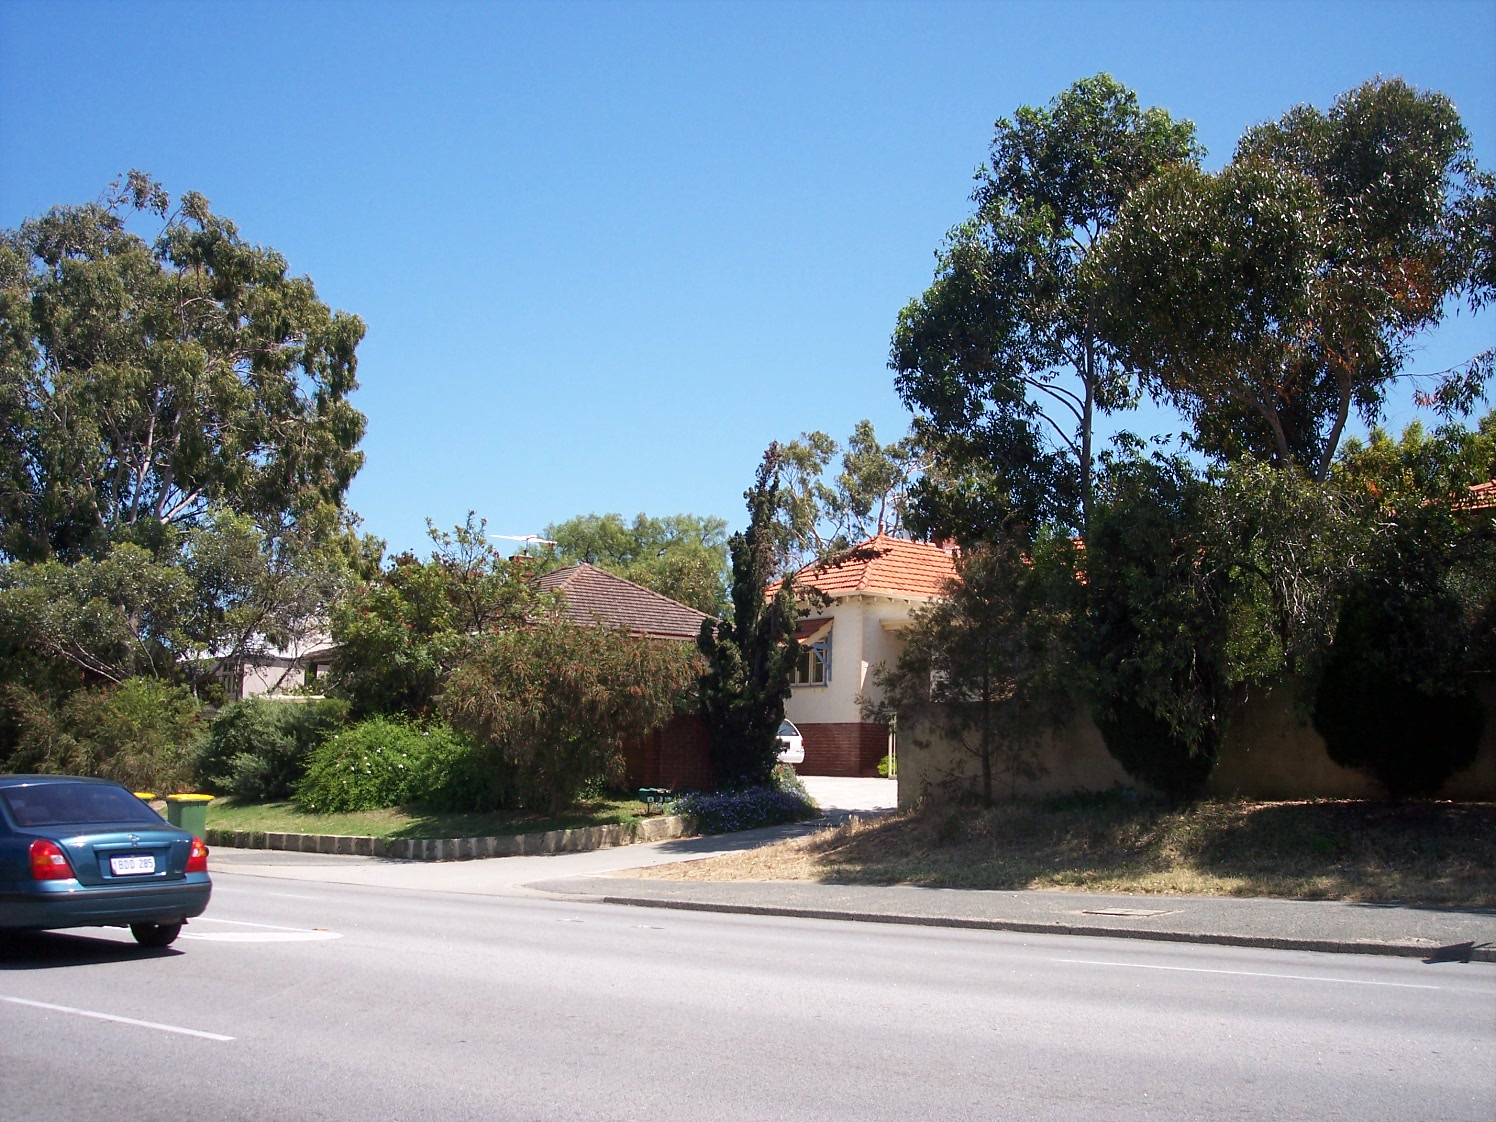 31-10-06 View NW 242A Canning Highway.jpg